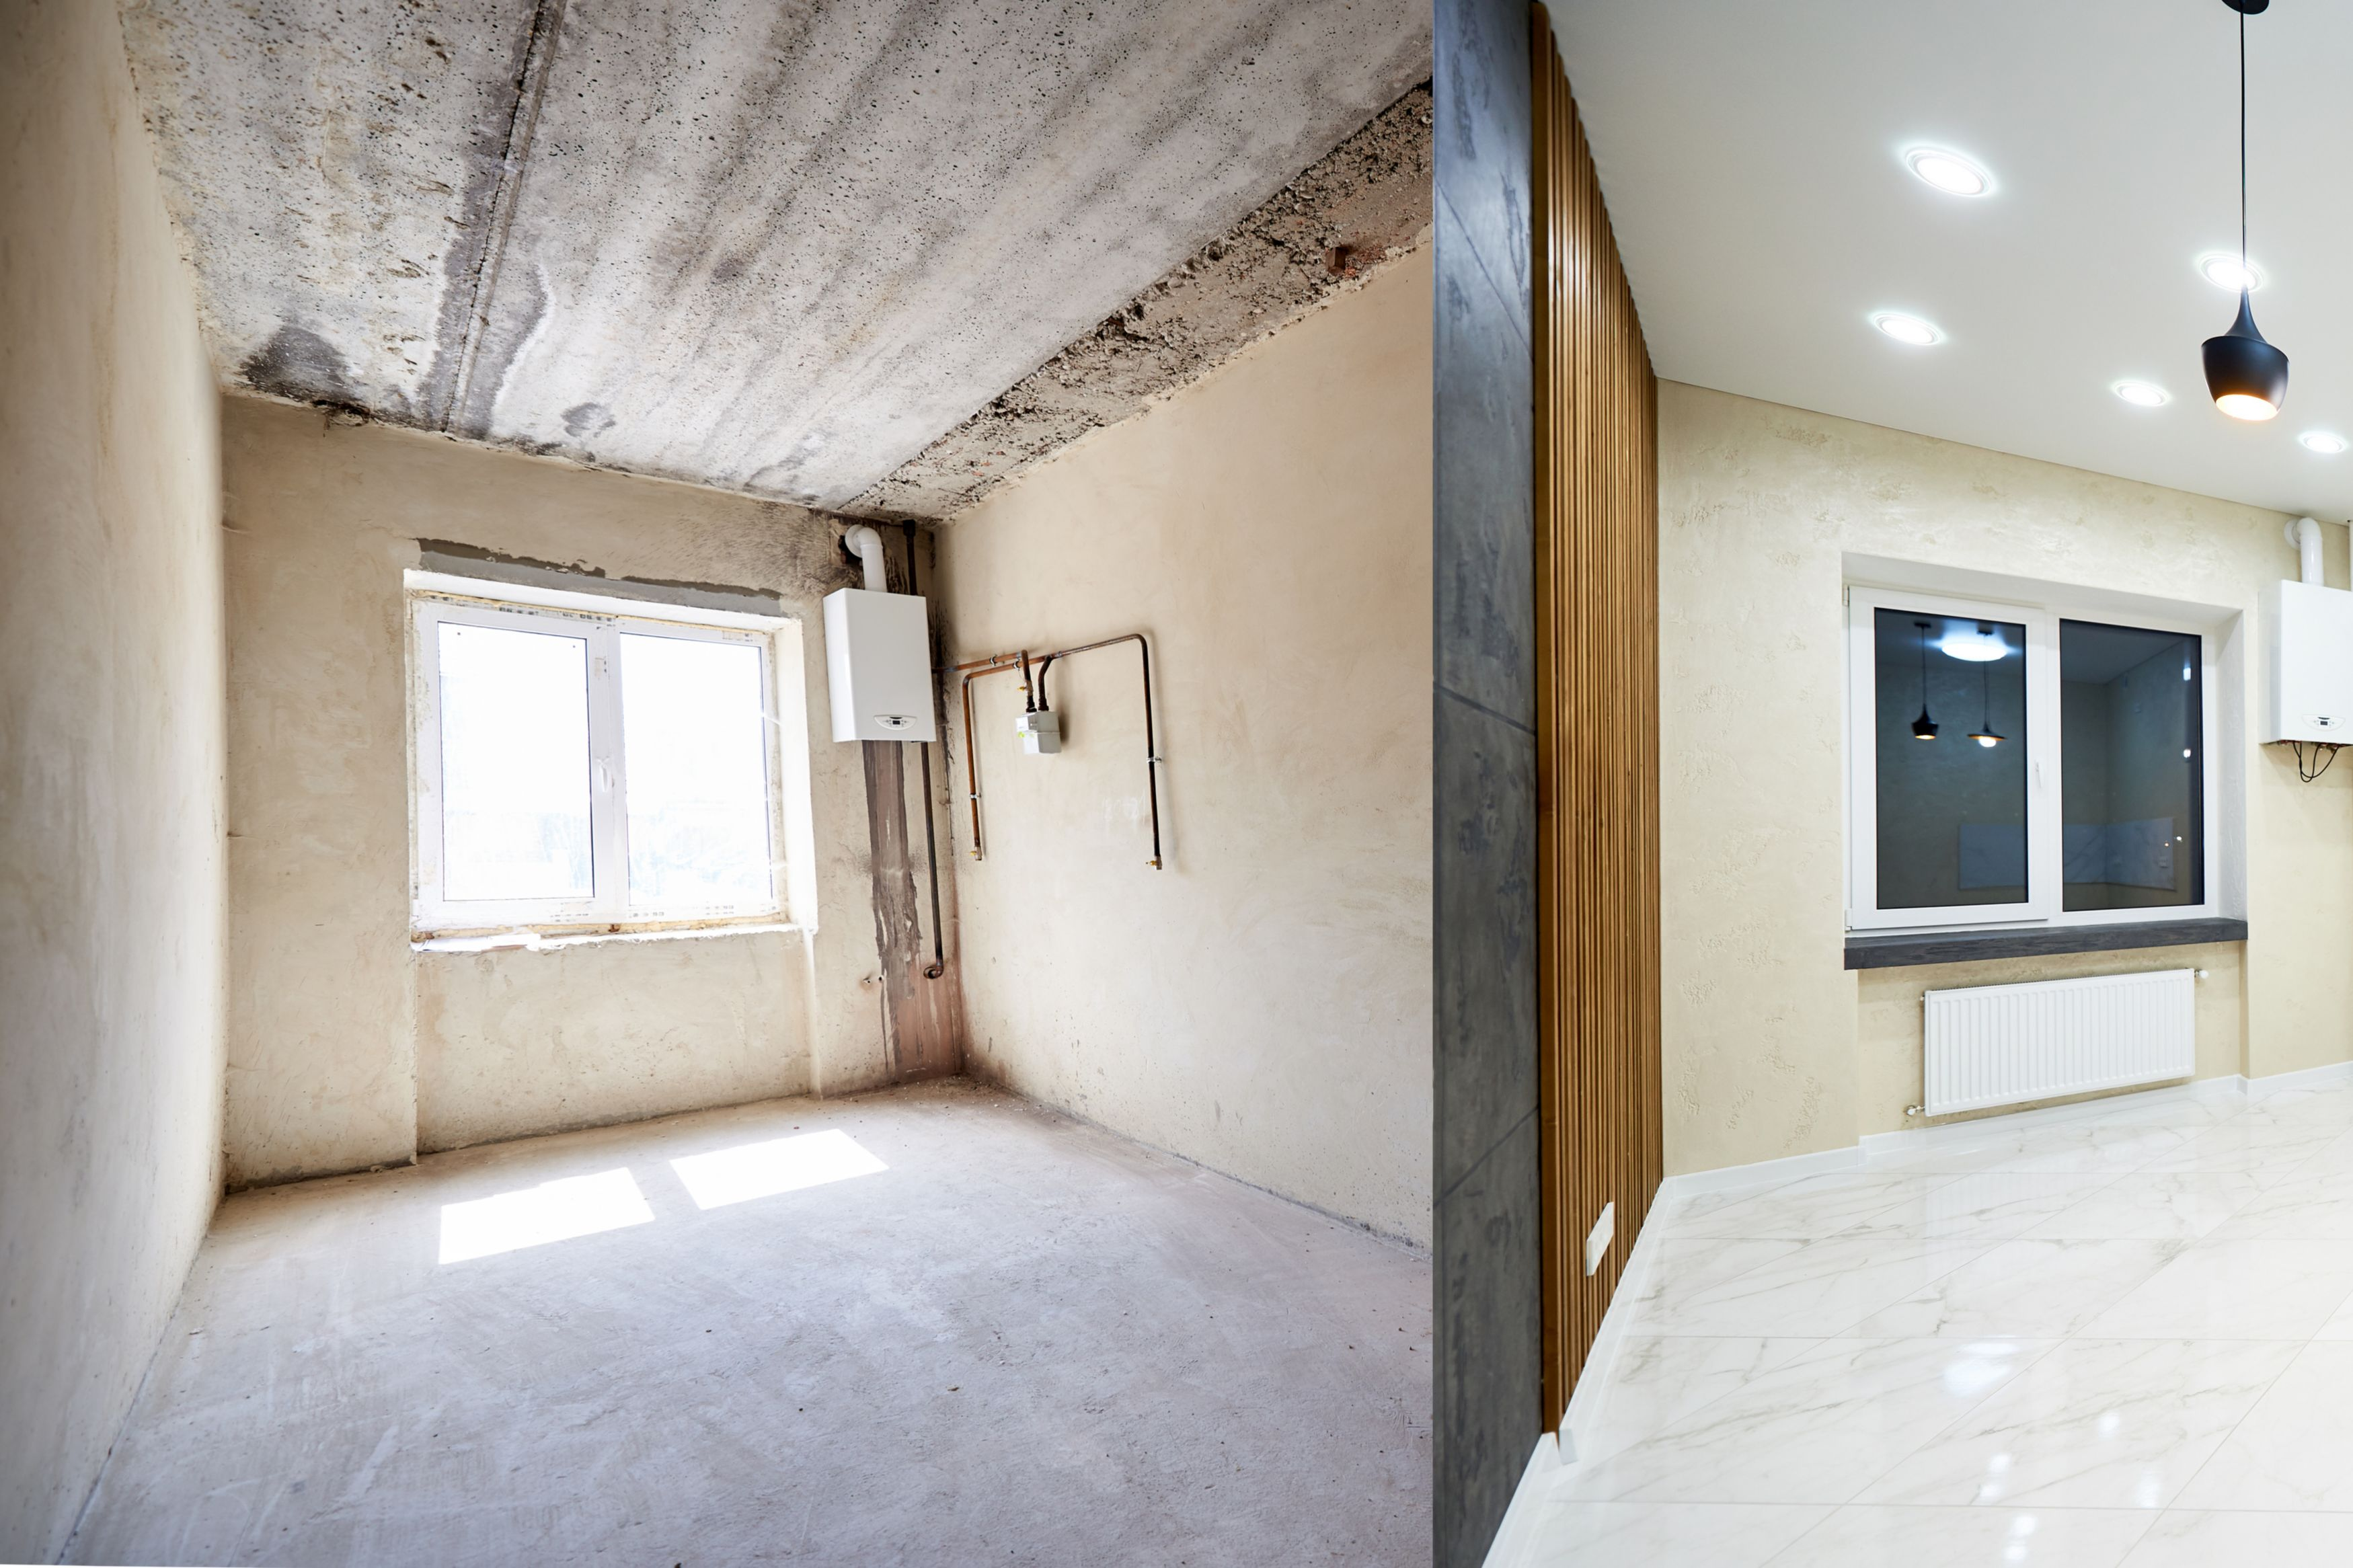 Comparison snapshot of a big beautiful room in a private house before and after reconstruction, empty grey walls vs renovated light tiled room